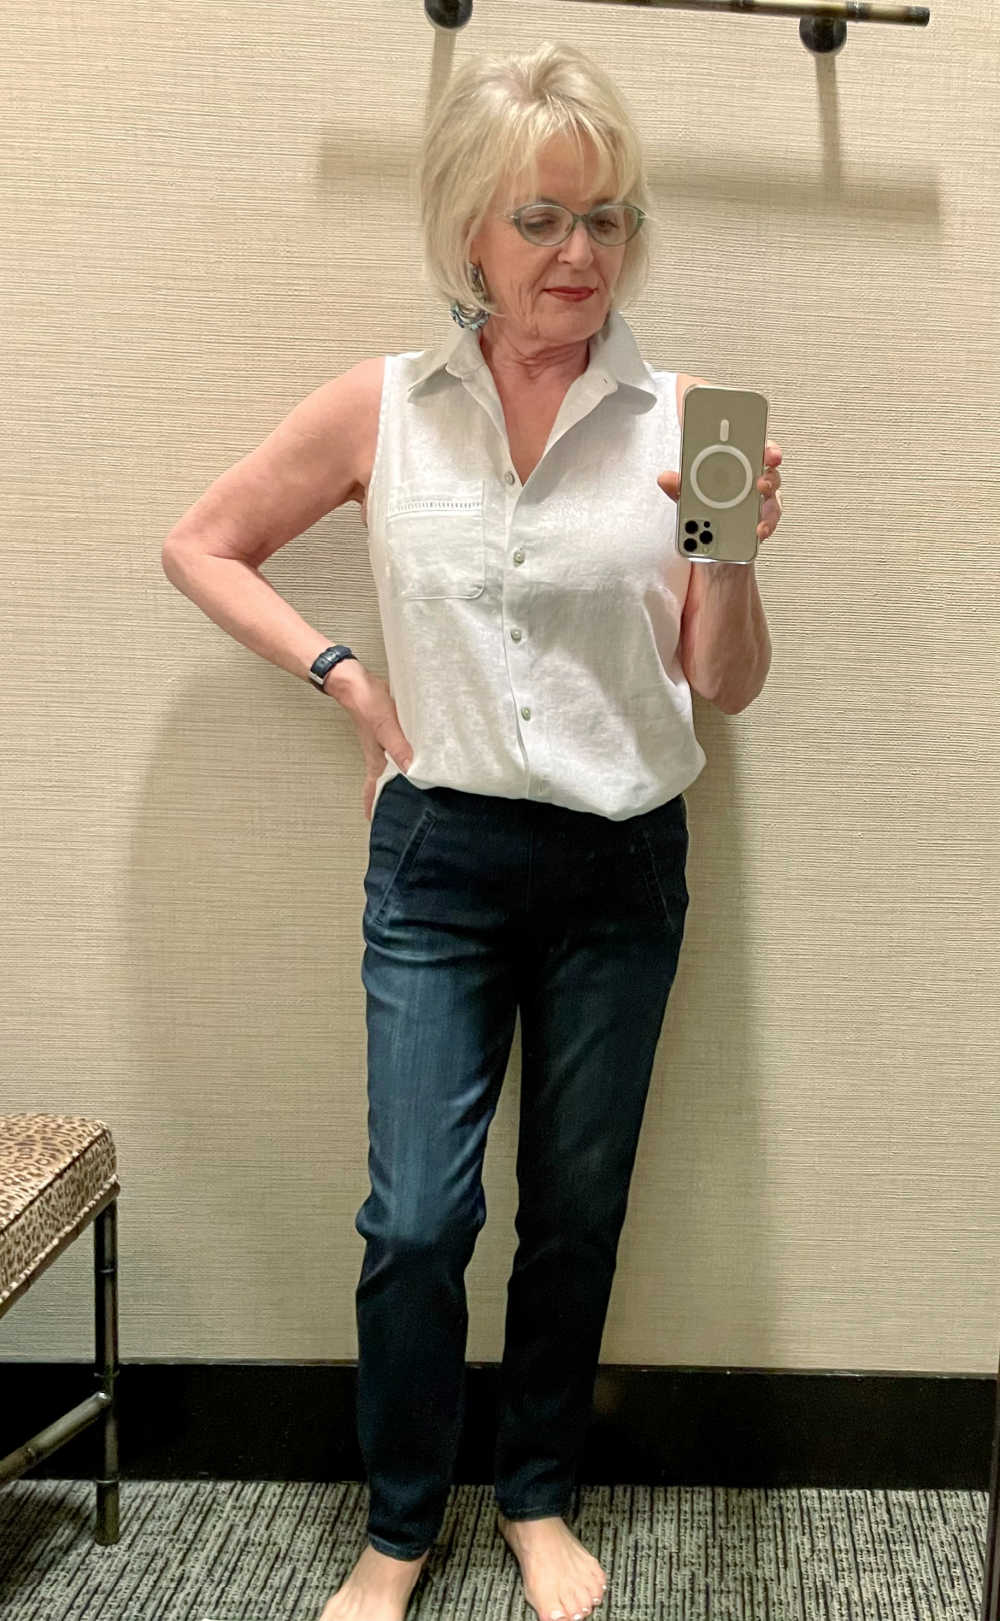 OVER 50 BLOGGER WEARING LINEN TUNIC AND DENIM JEANS